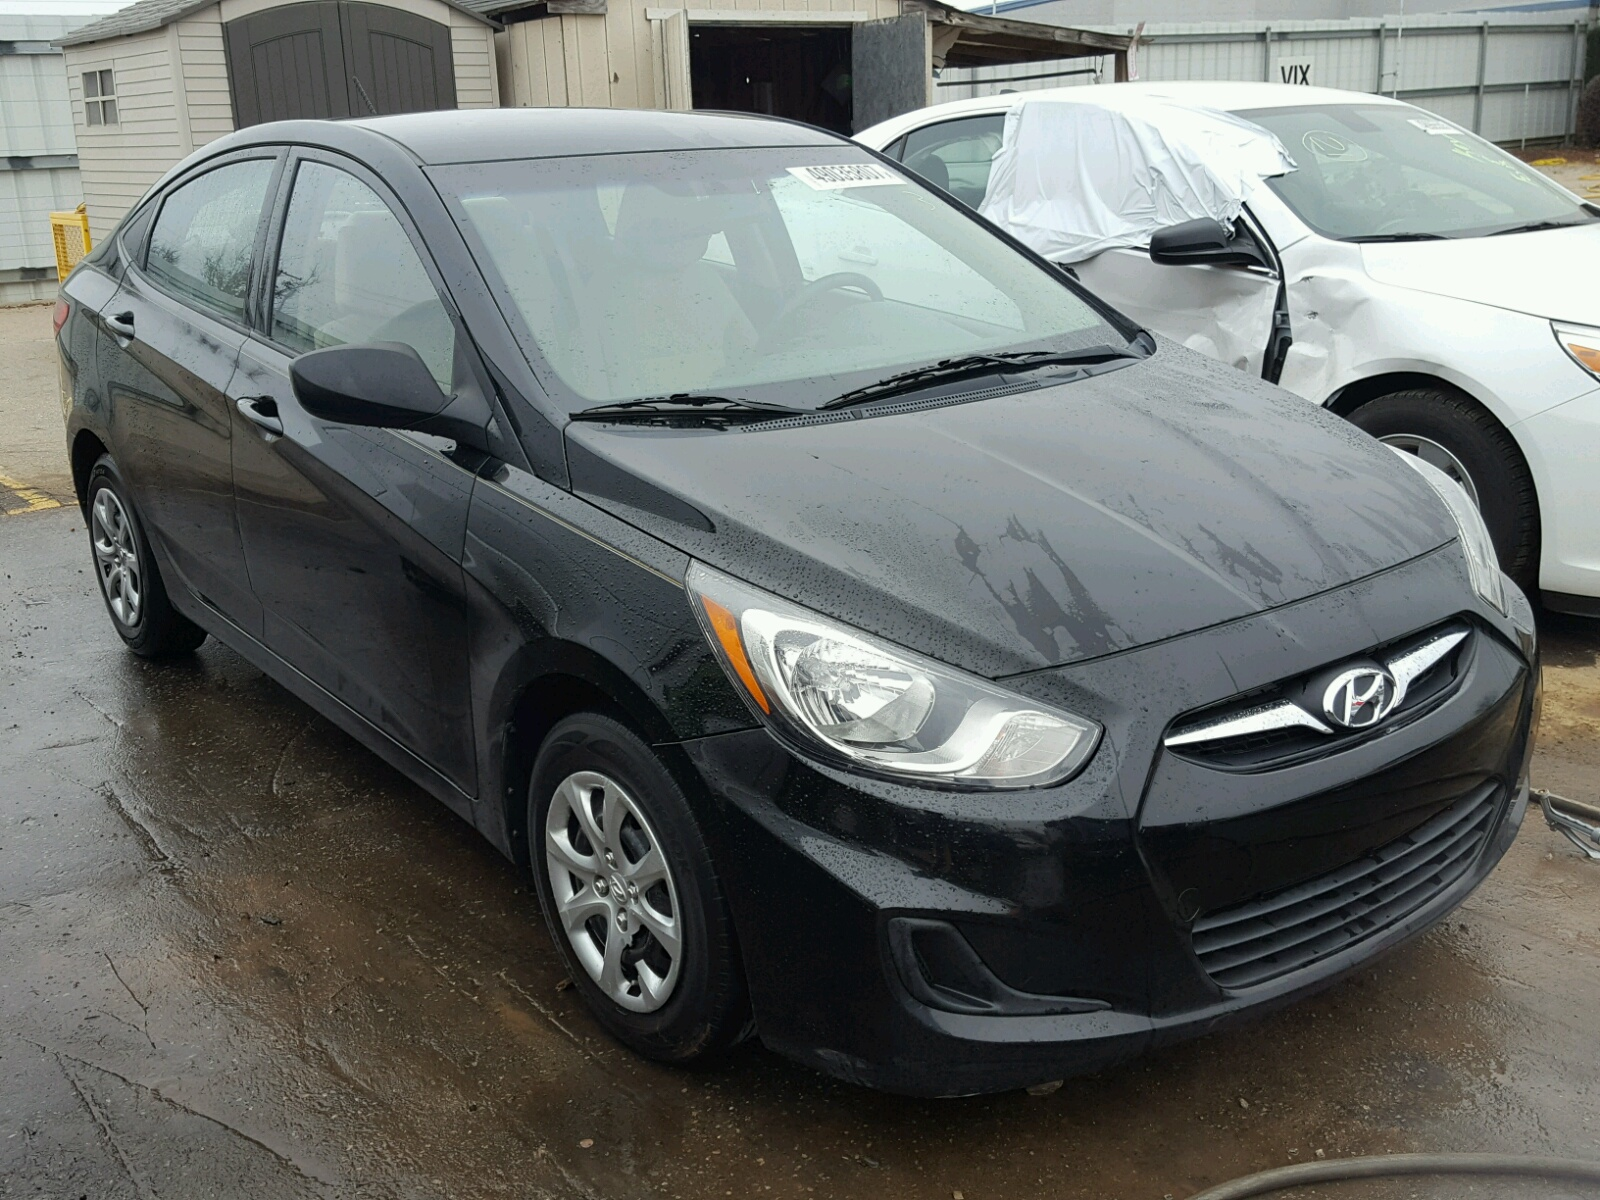 sc right greer lot sale carfinder auto online auctions view white on in cert hyundai en salvage l copart accent of title